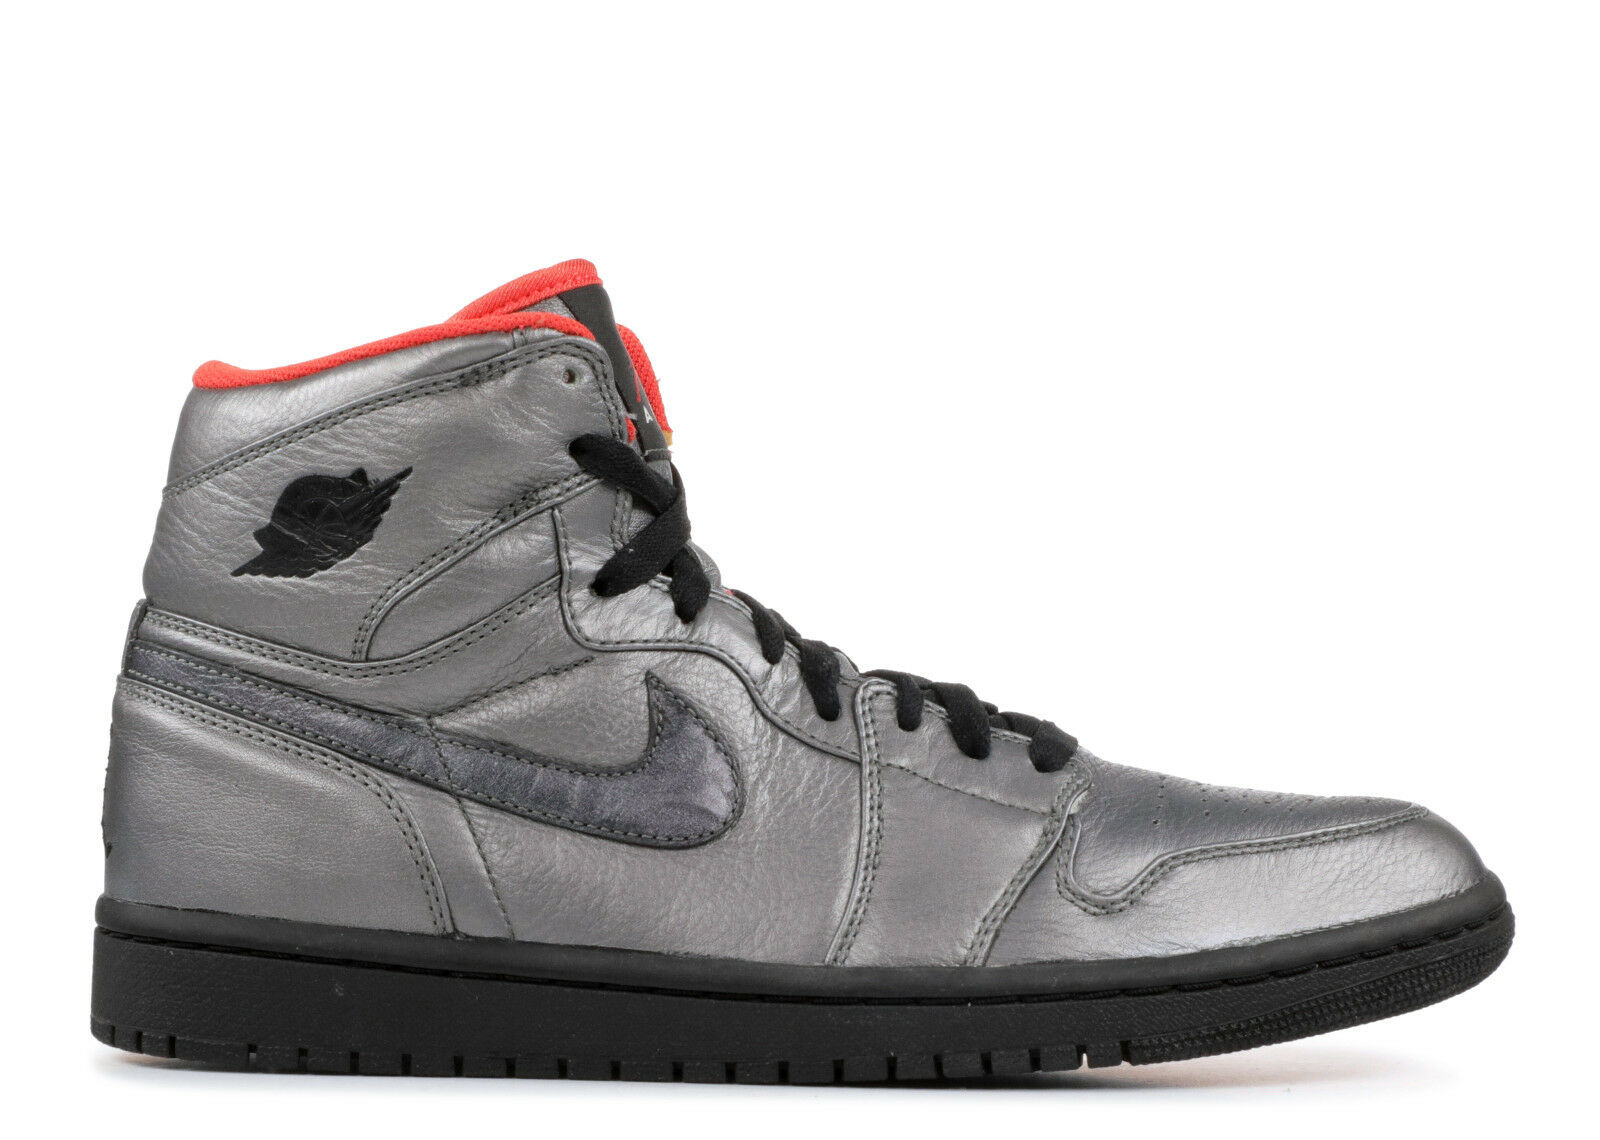 2008 NIKE AIR JORDAN 1 RETRO HI PREMIER PEWTER SZ 12.5 332134-001BANNED